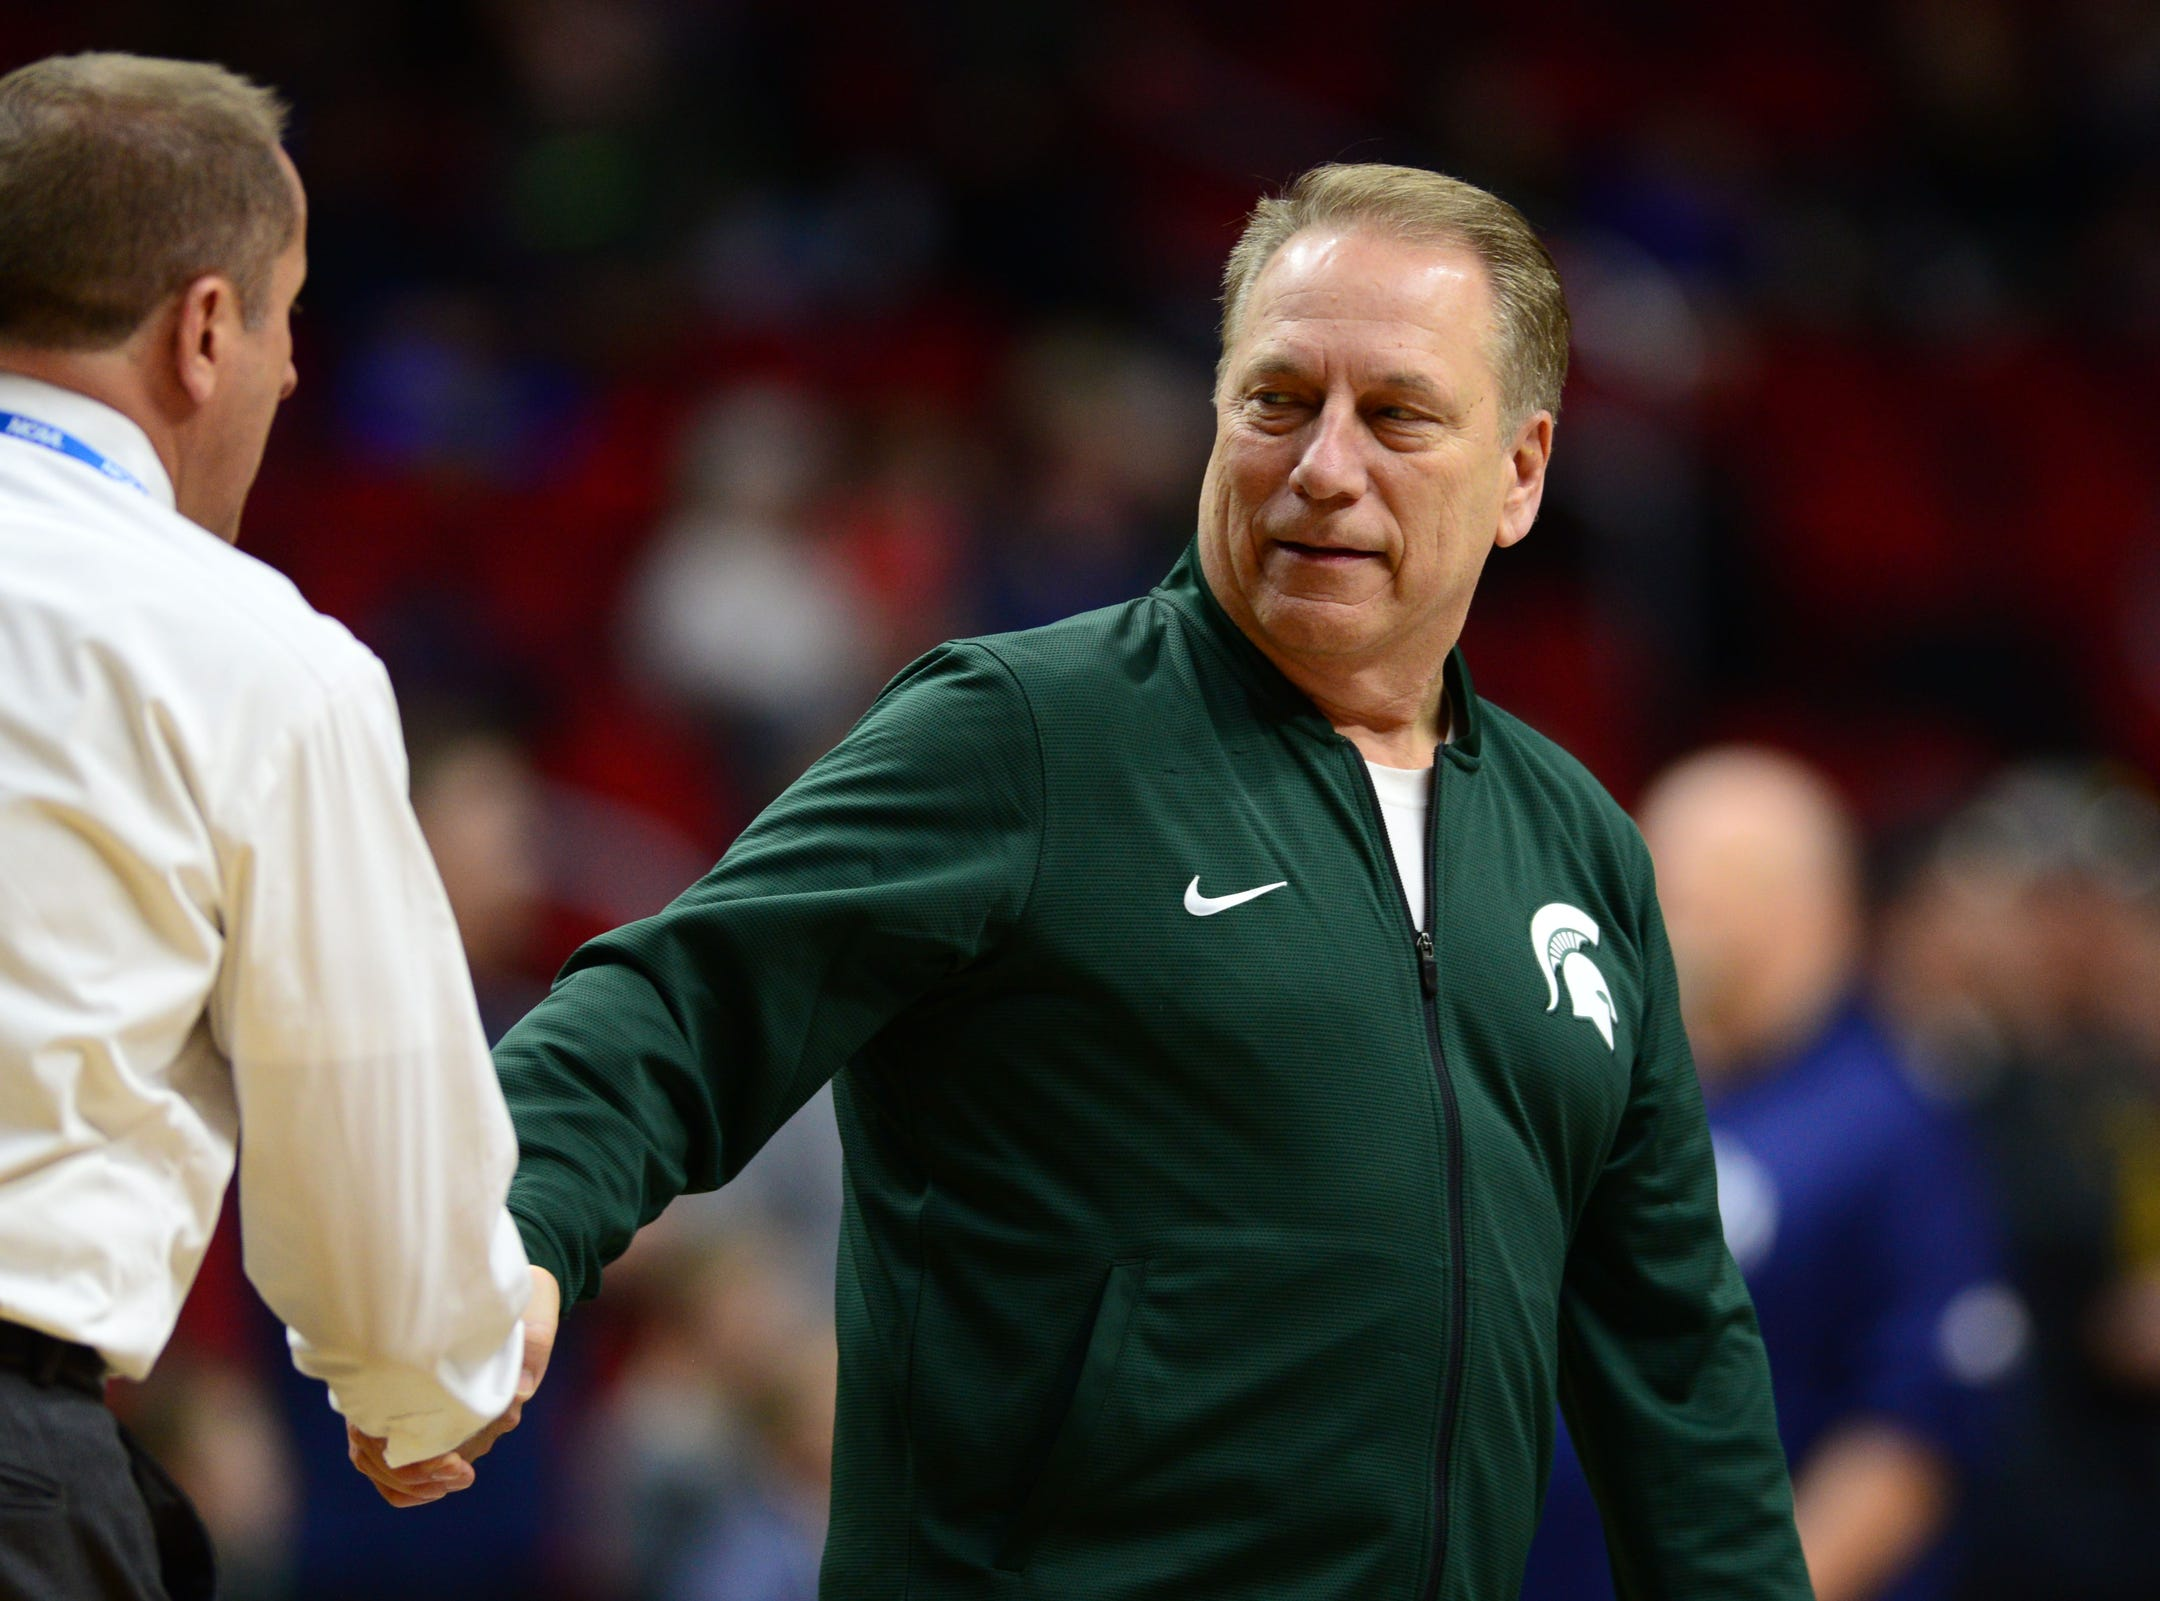 Mar 20, 2019; Des Moines, IA, USA; Michigan State Spartans head coach Tom Izzo during practice before the first round of the 2019 NCAA Tournament at Wells Fargo Arena. Mandatory Credit: Jeffrey Becker-USA TODAY Sports